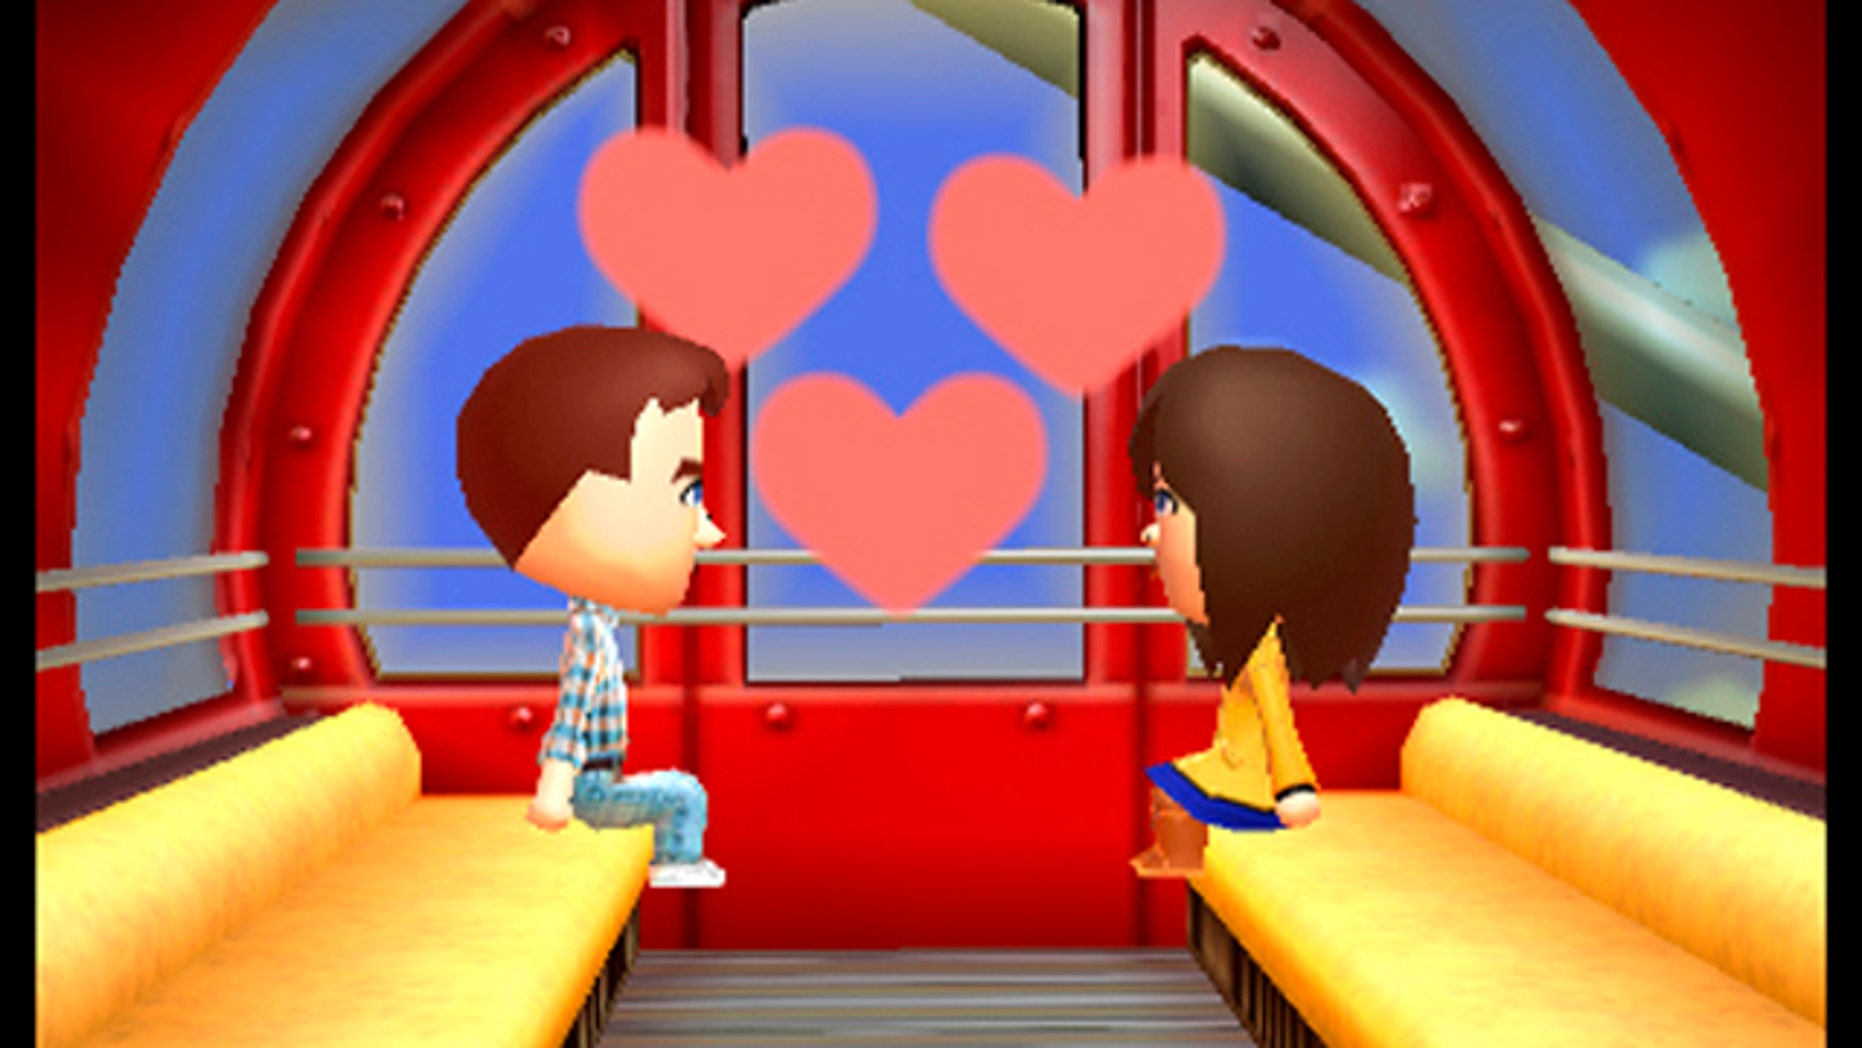 FILE - This image provided by Nintendo shows a scene from the video game 'Tomodachi Life'. Nintendo is apologizing and pledging to be more inclusive after being criticized for not recognizing same-sex relationships in English editions of the life-simulator video game. But the publisher said it was too late to make changes. (AP Photo/Nintendo)